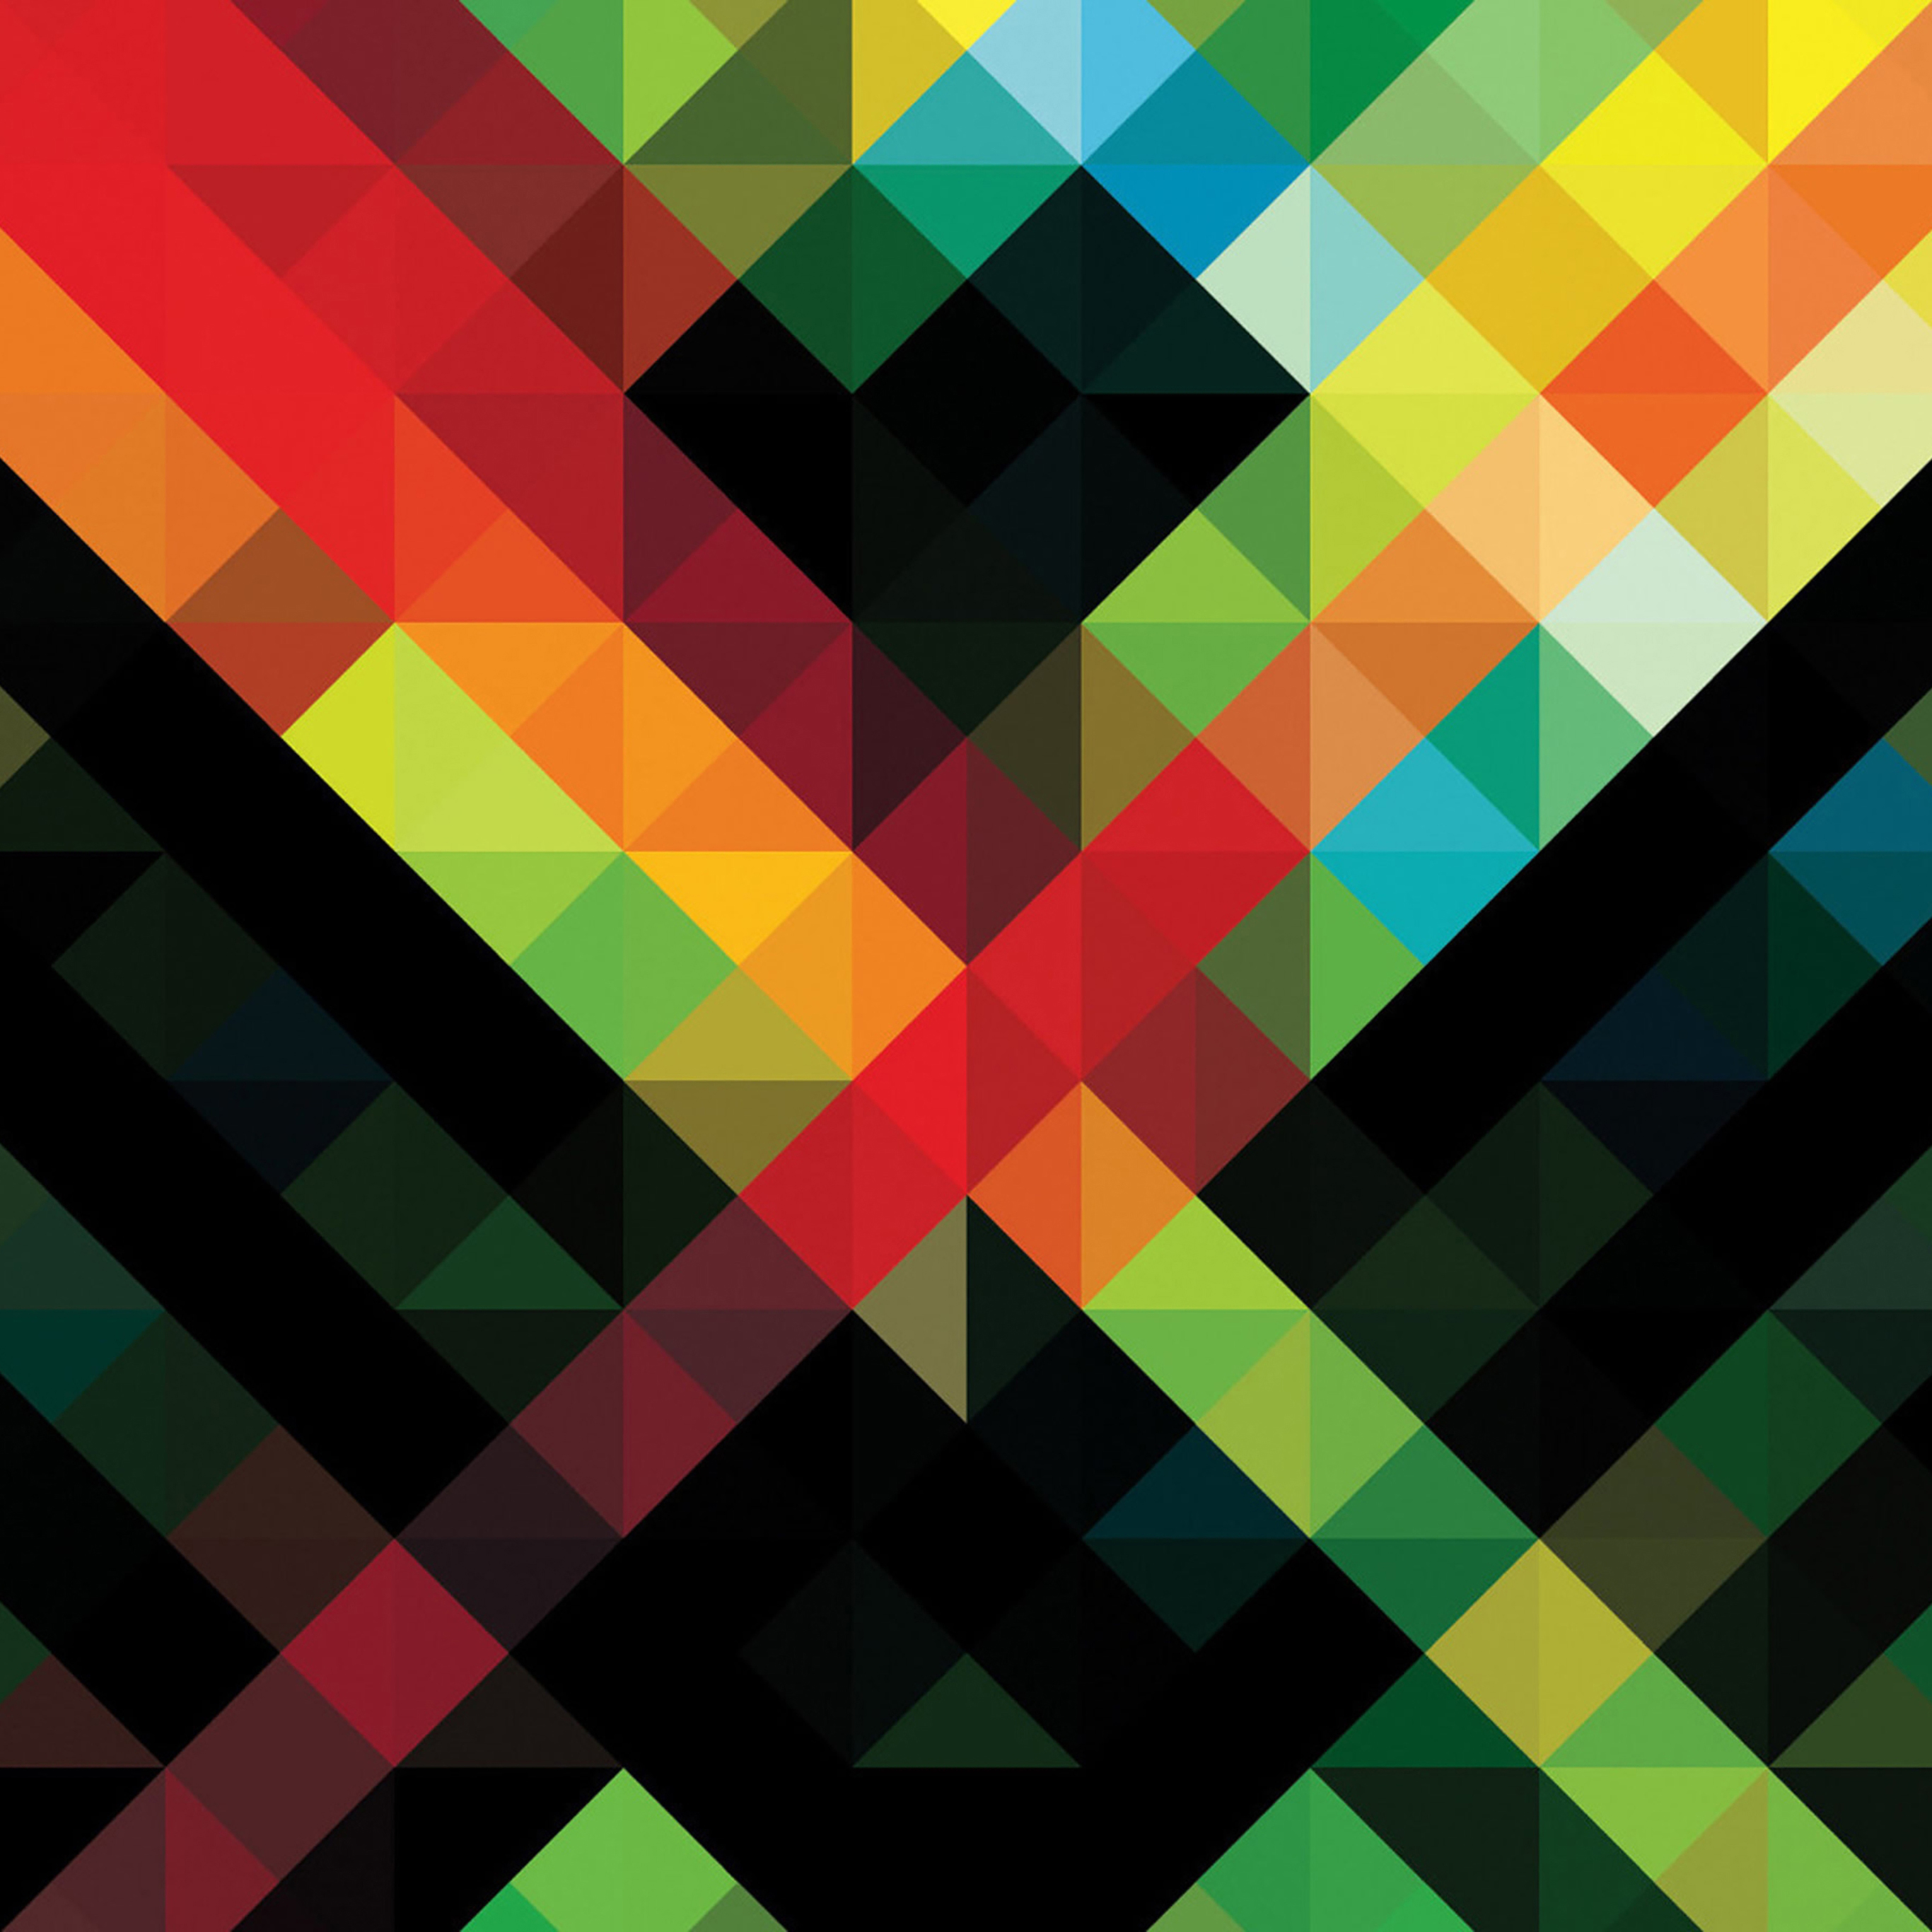 Vb96 Wallpaper Line Blocks Pattern Art